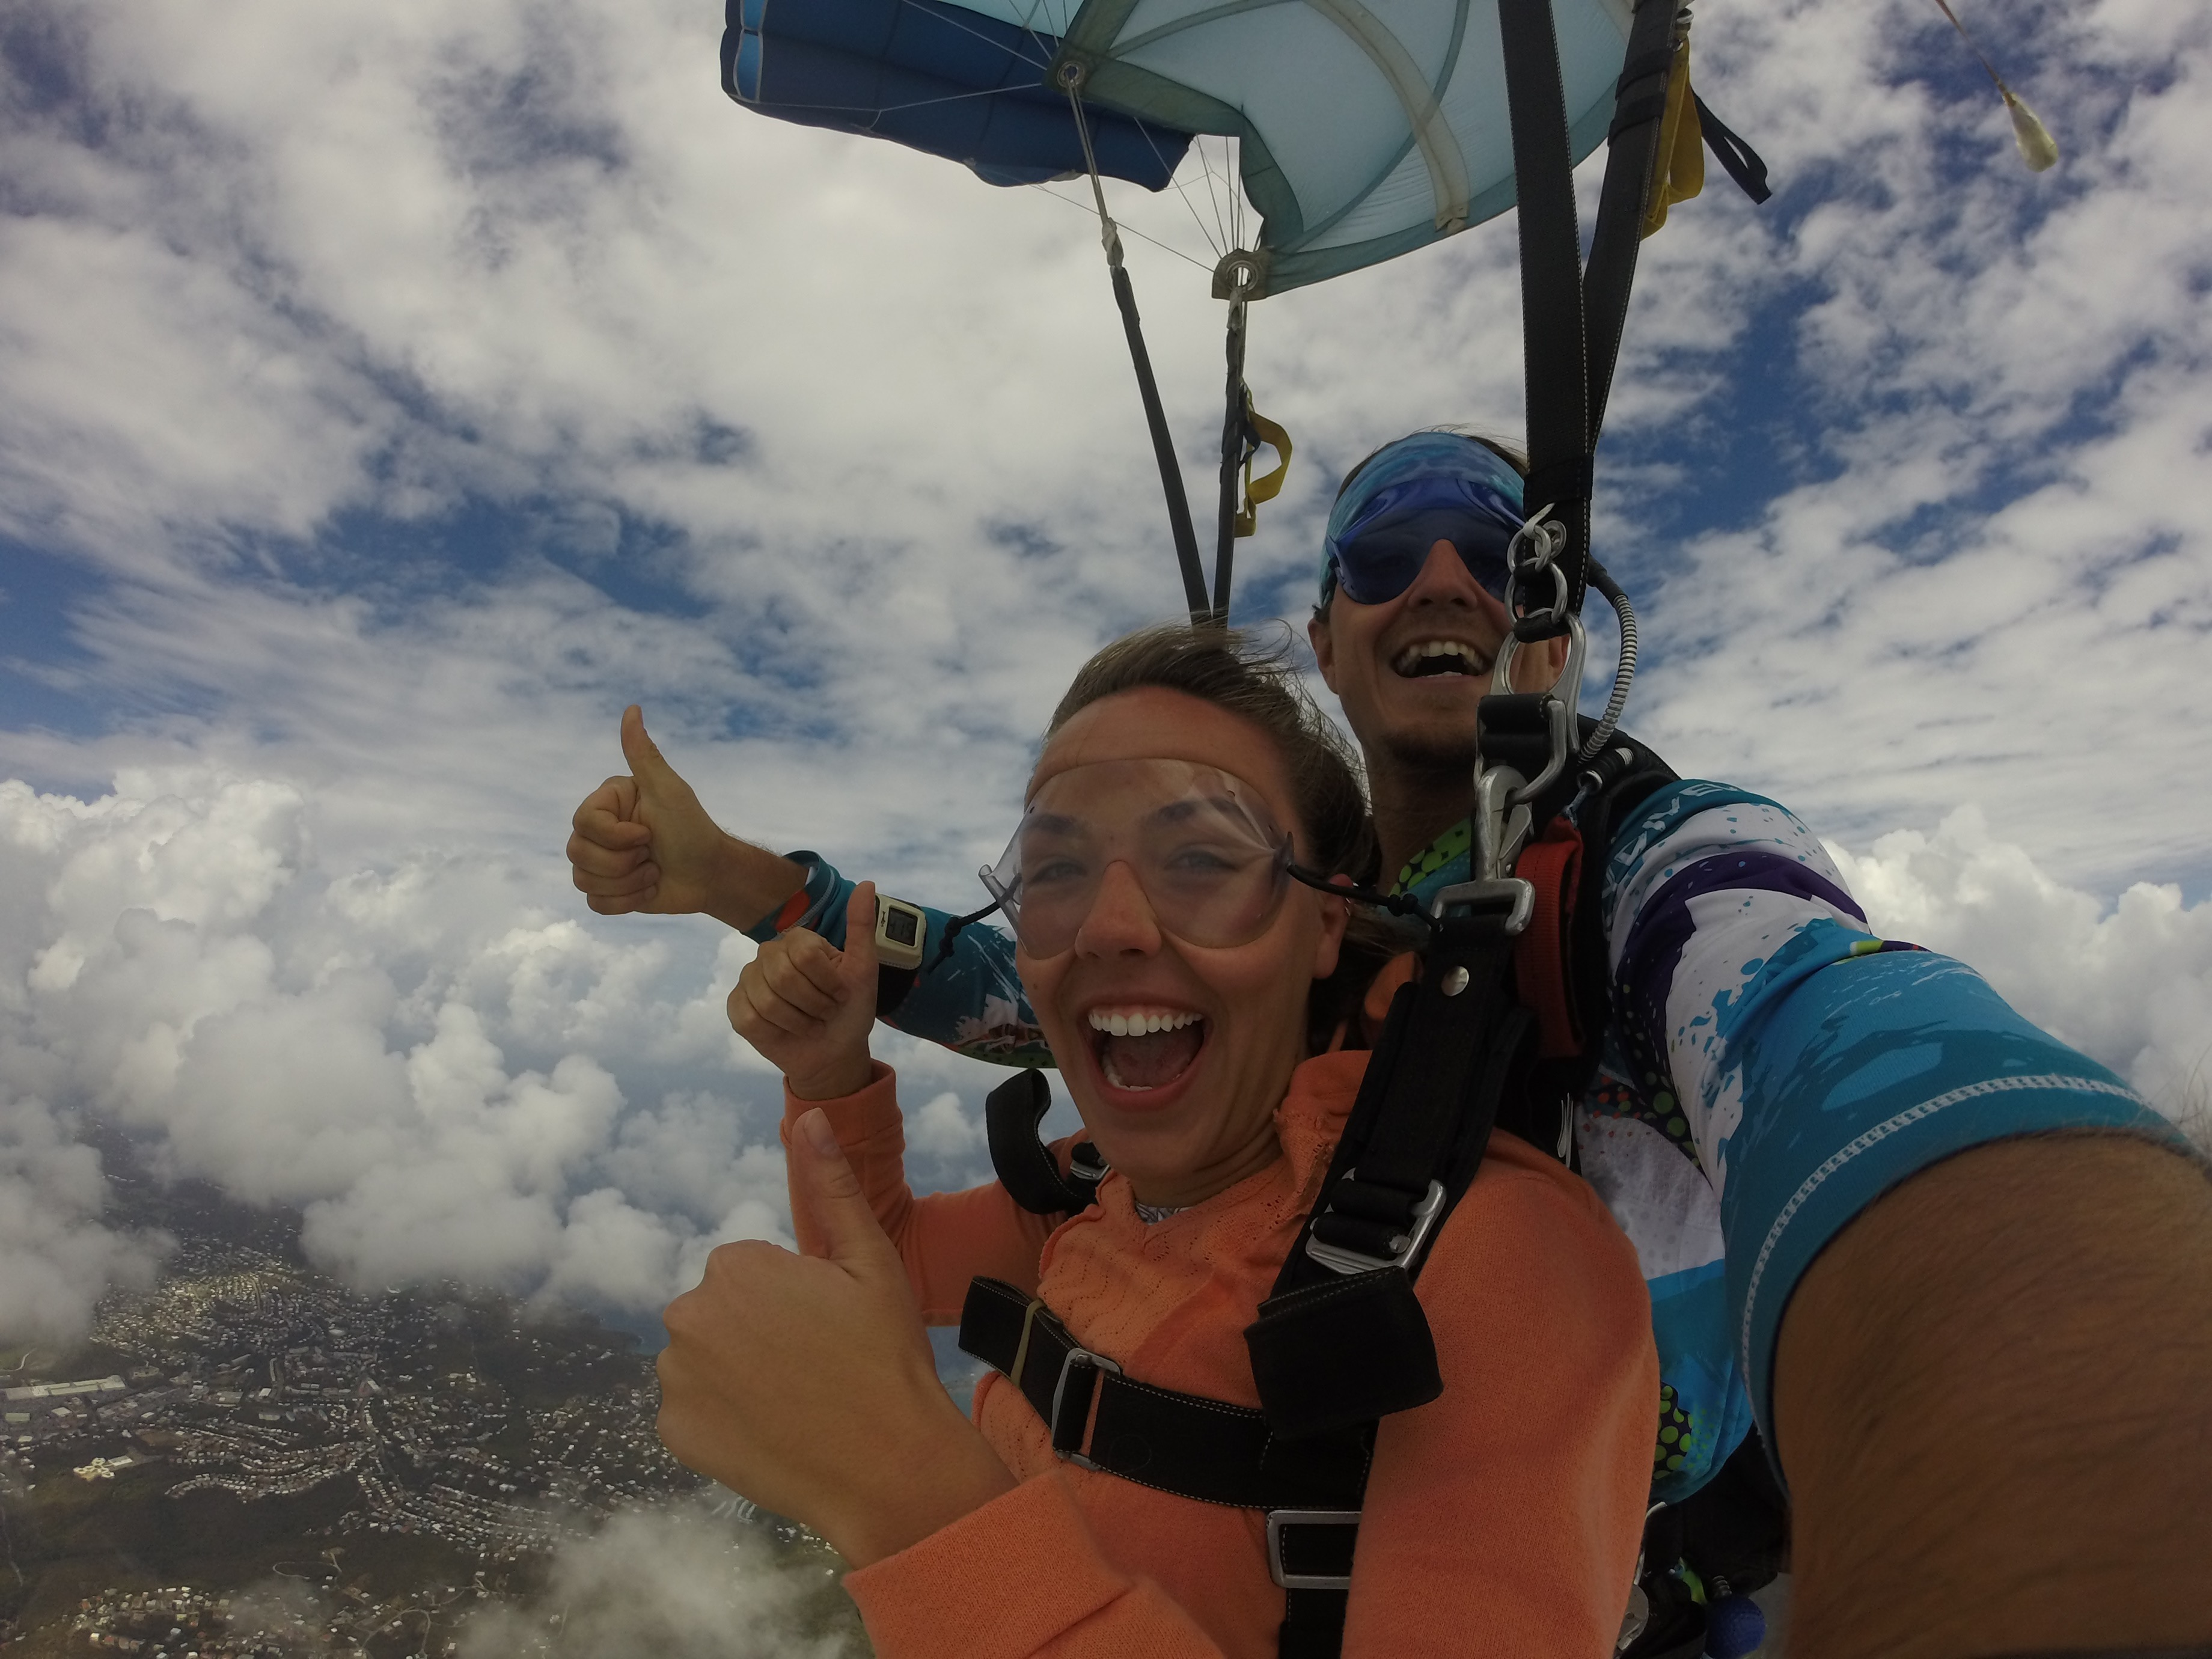 Tandem Skydive Packages - Take The Plunge With Our Certified